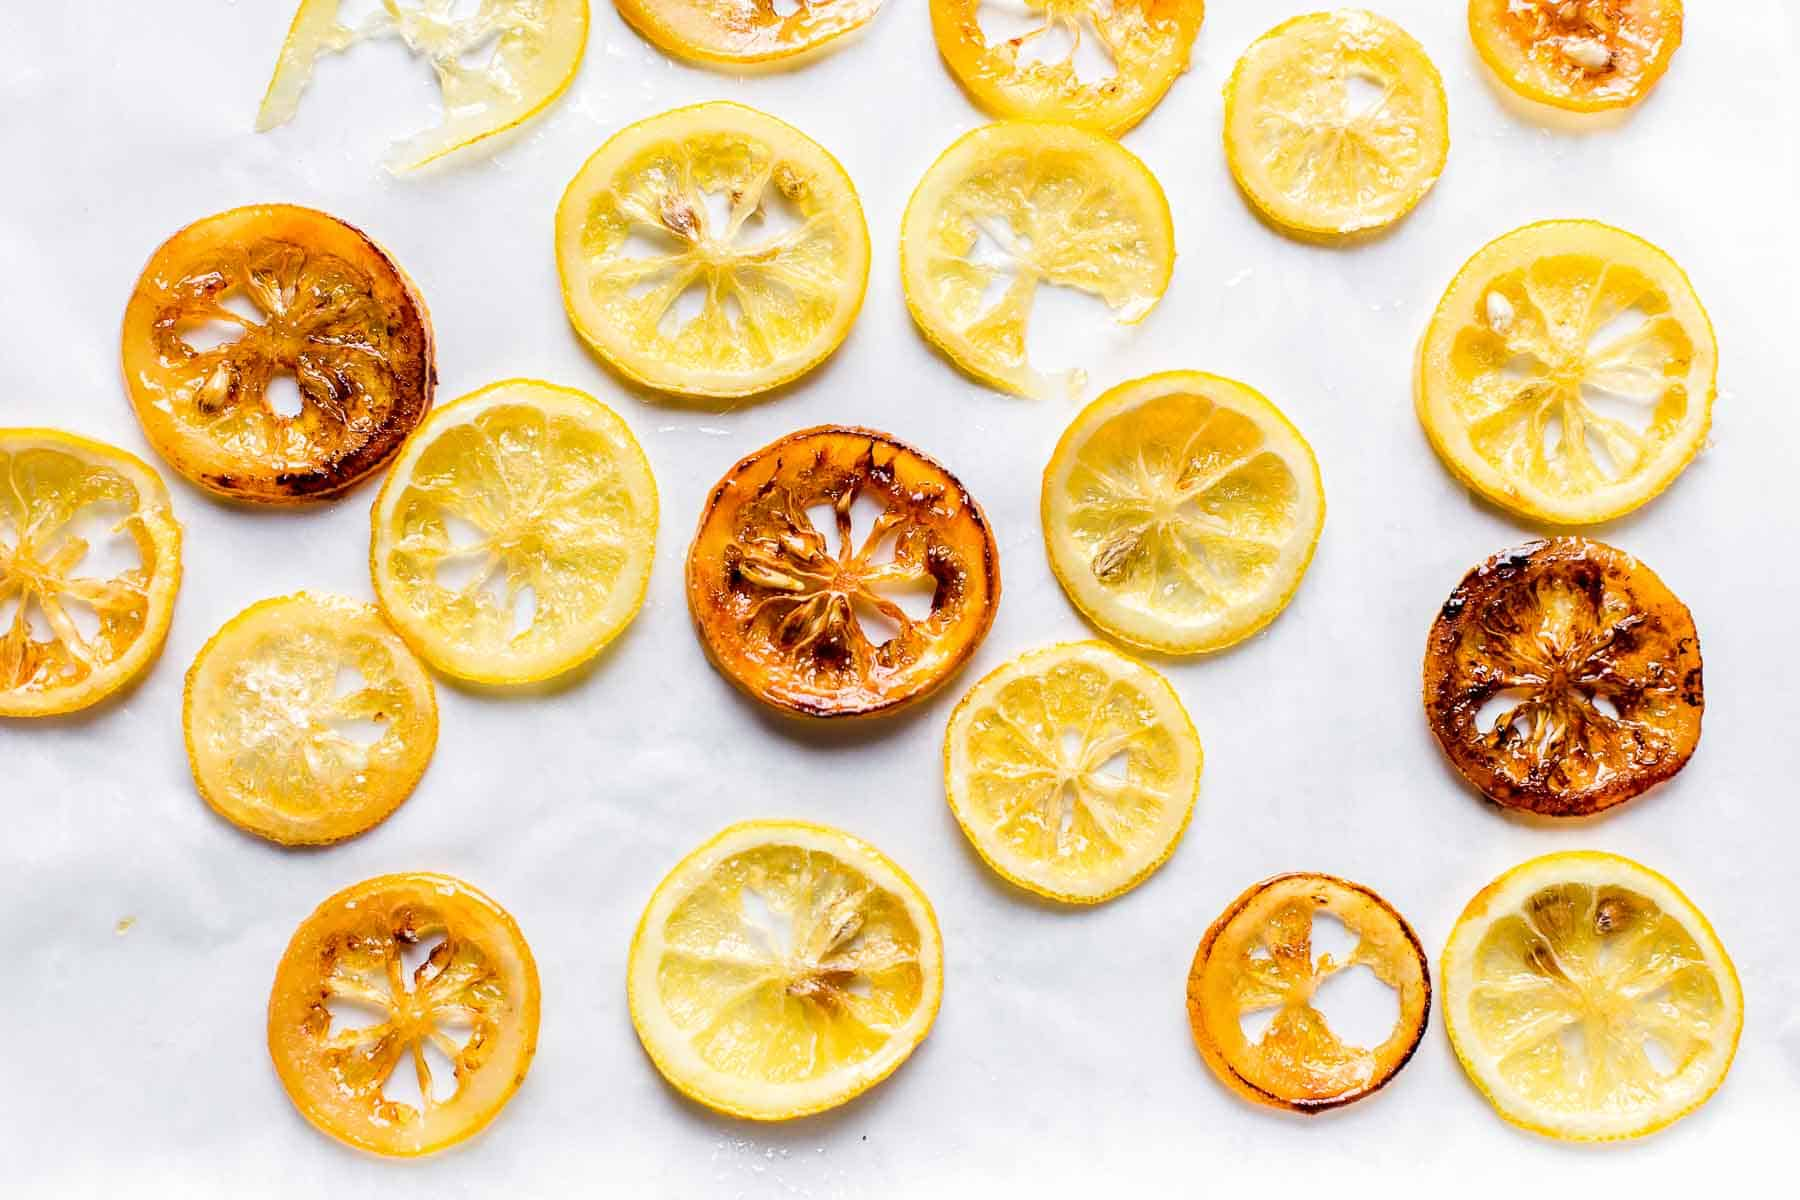 candied lemon for decoration